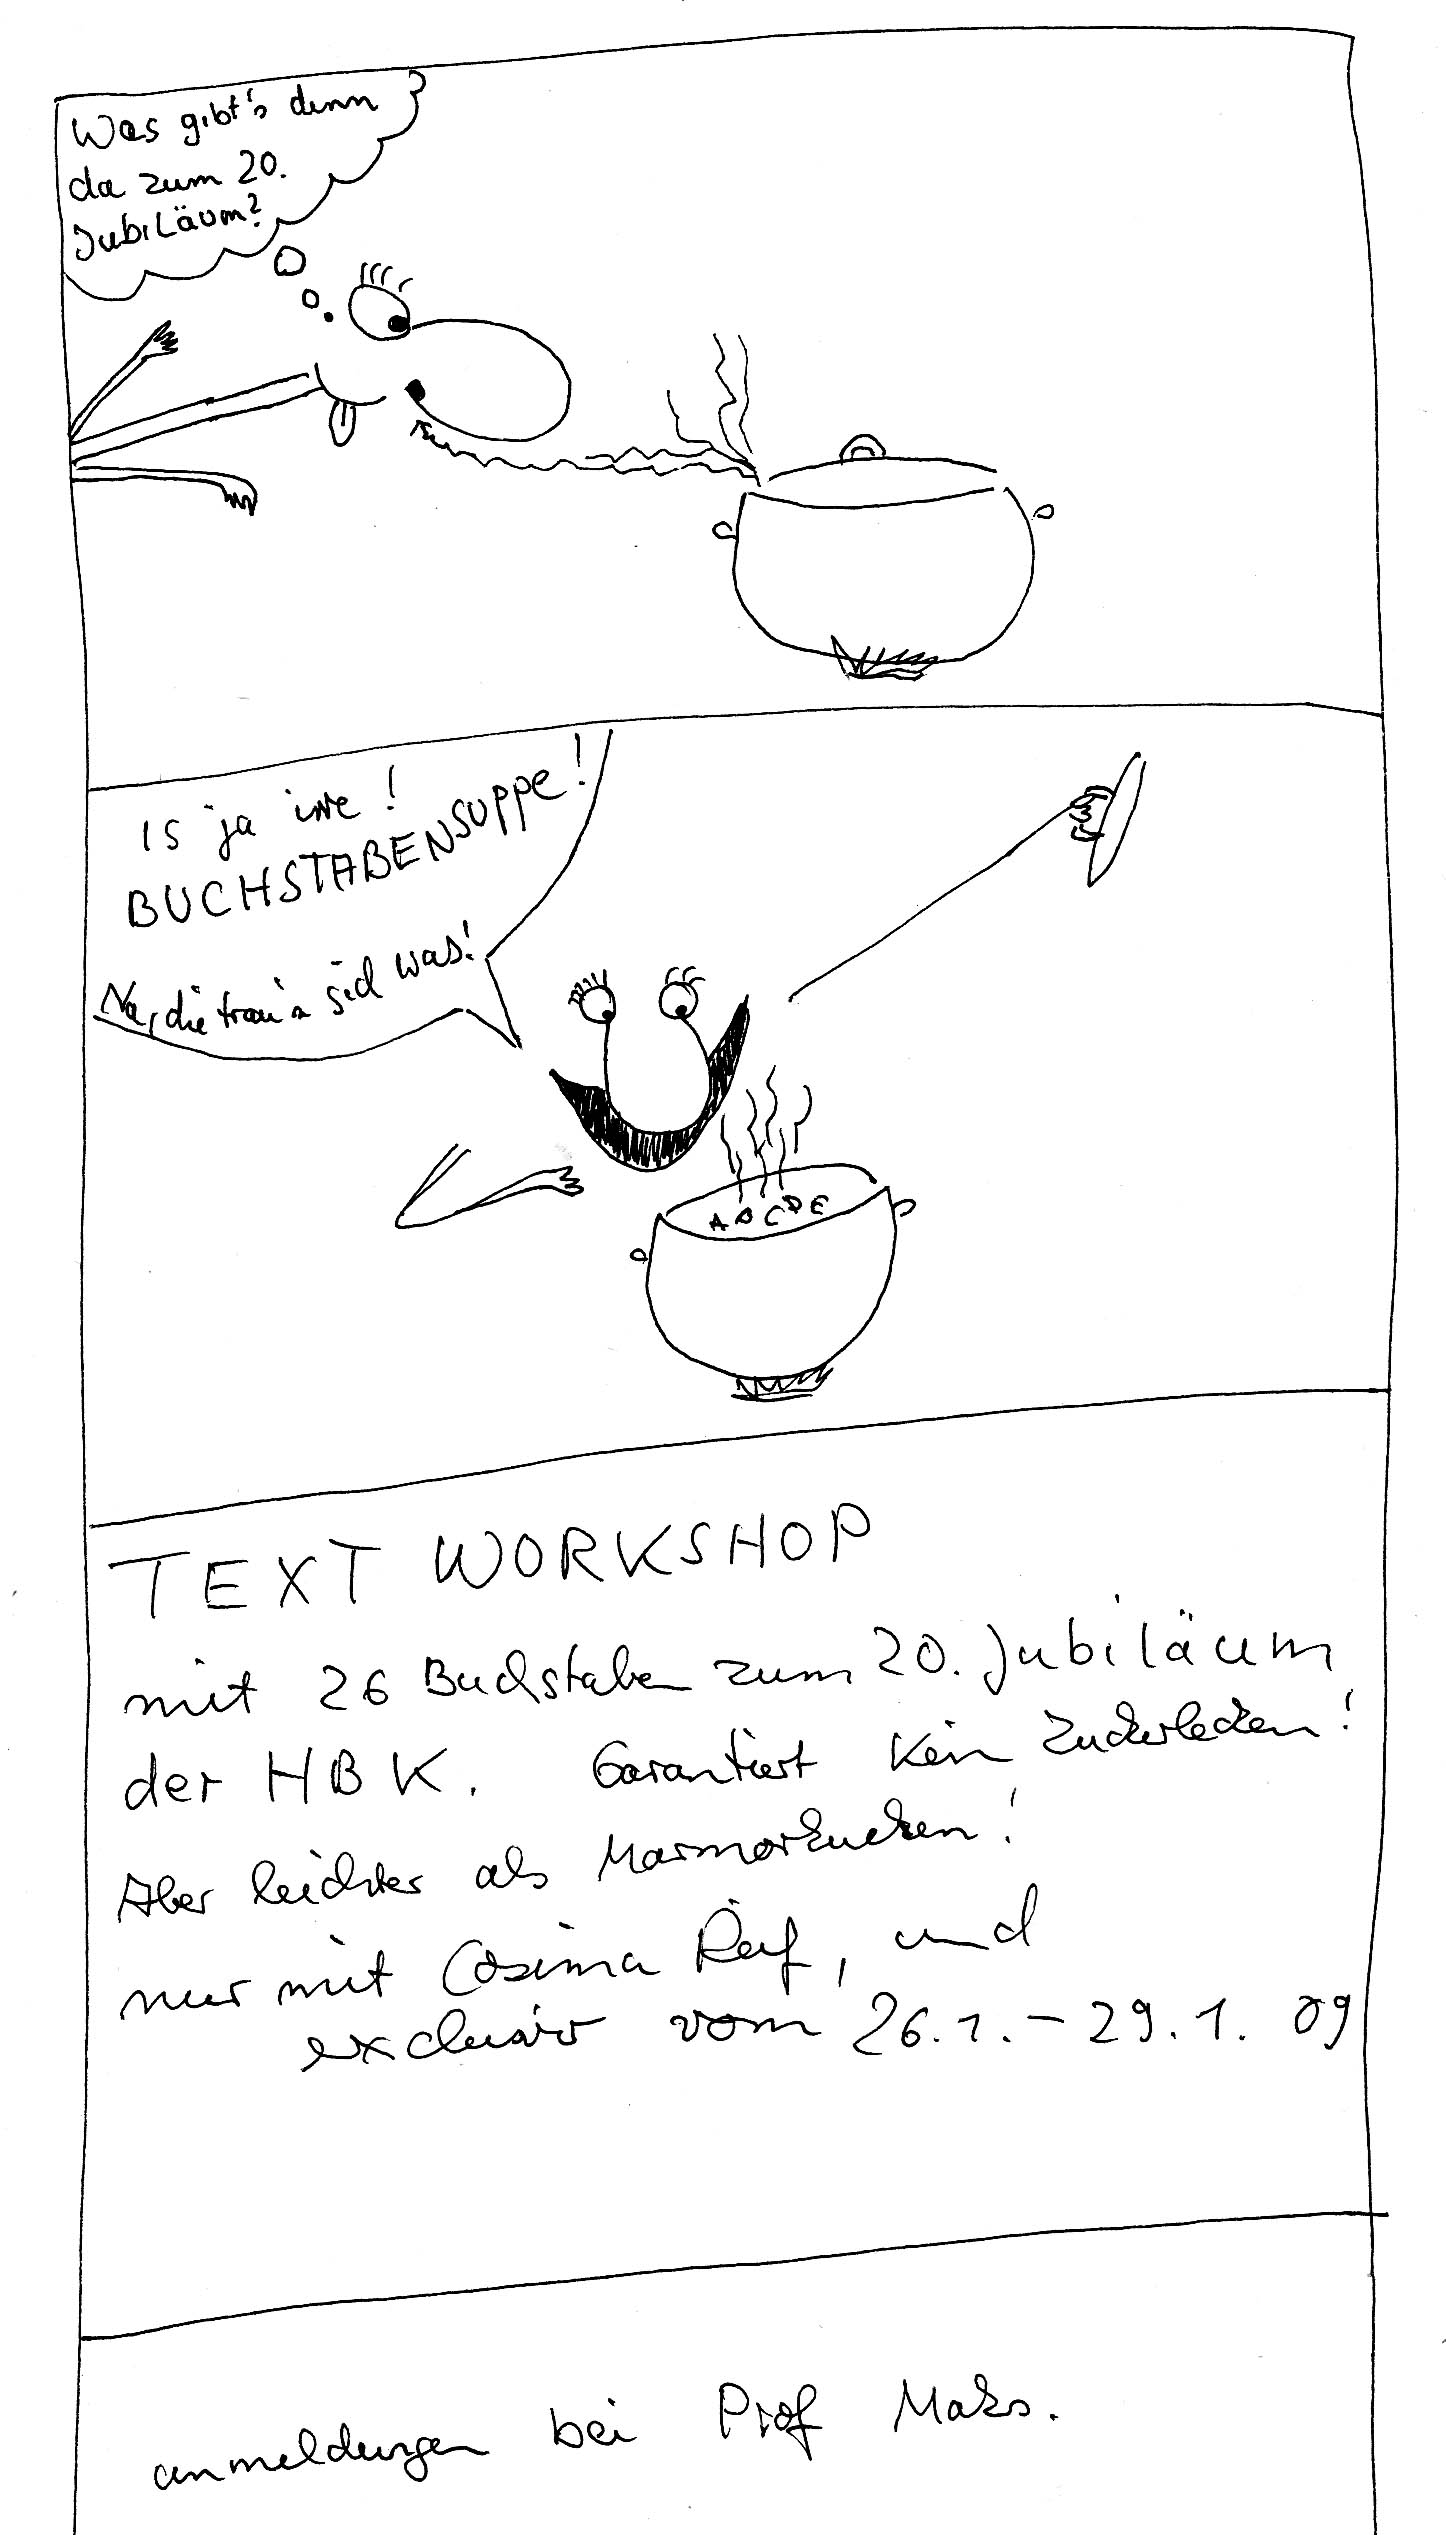 Text-Workshop in Saarbrücken.